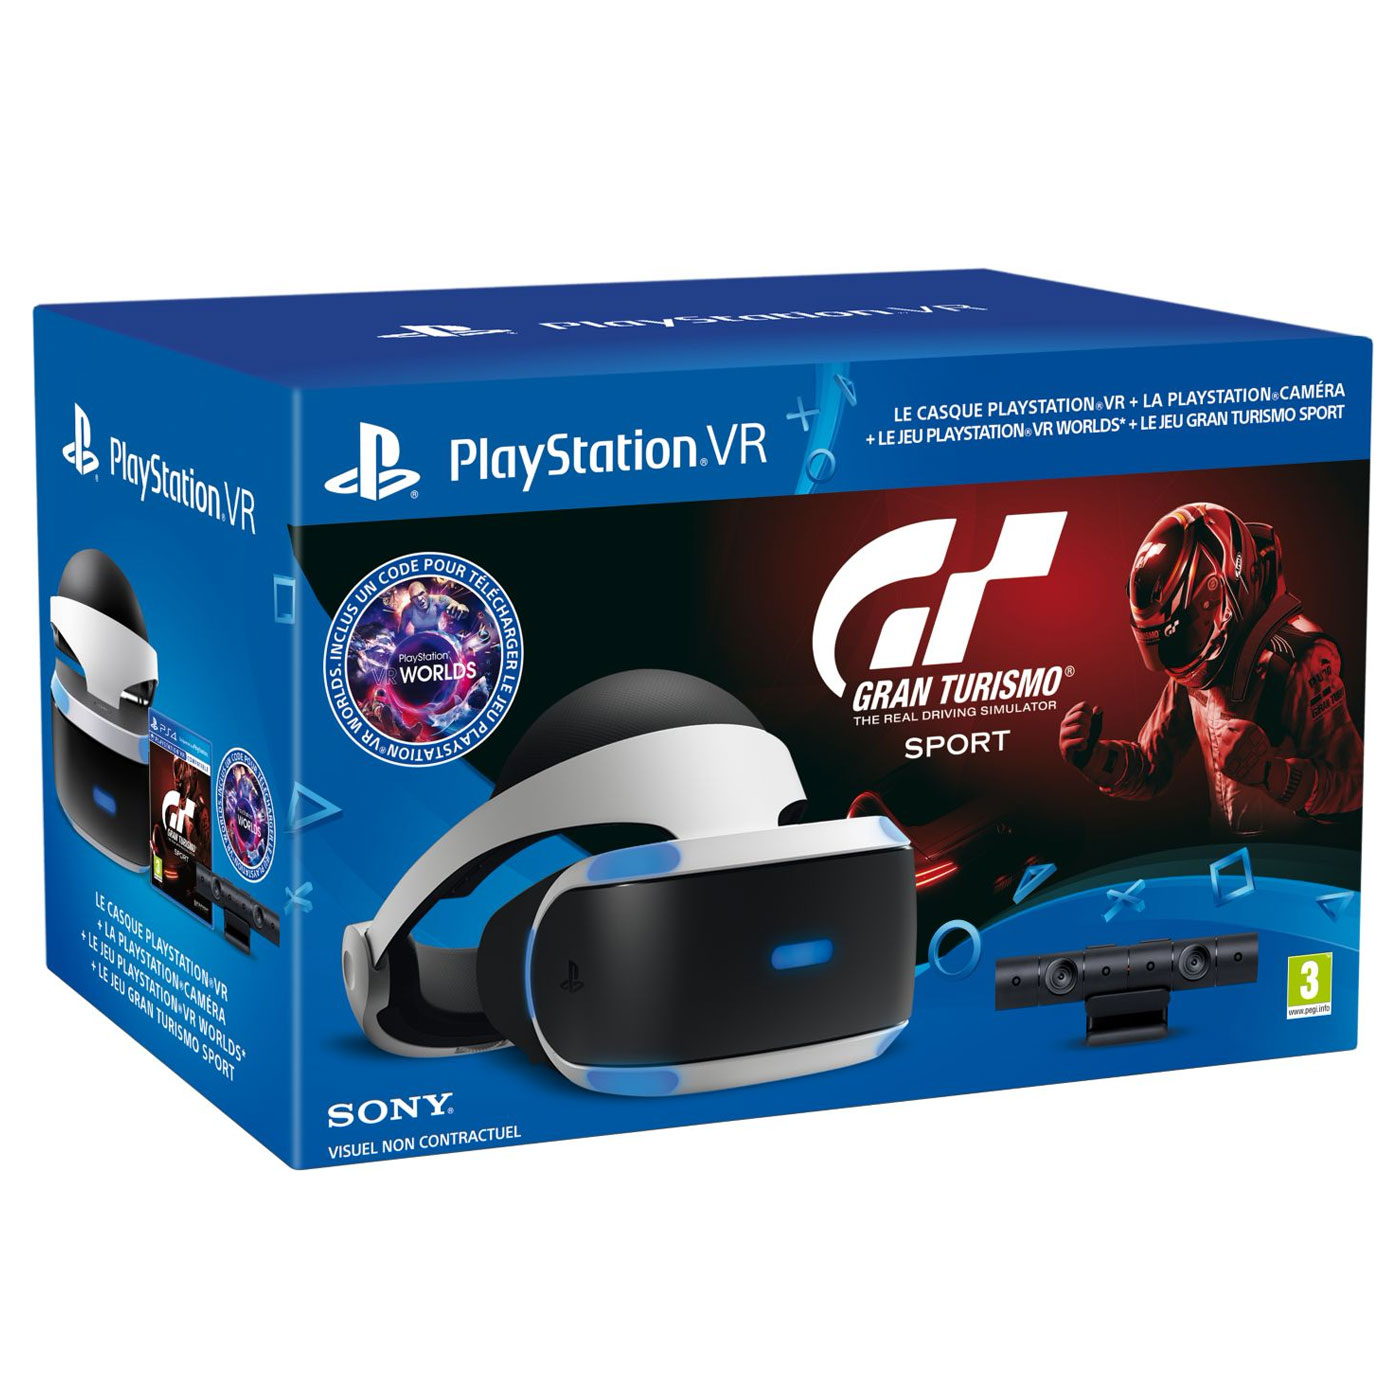 sony playstation vr psvr cam ra gran turismo sport vr world accessoires ps4 sony. Black Bedroom Furniture Sets. Home Design Ideas